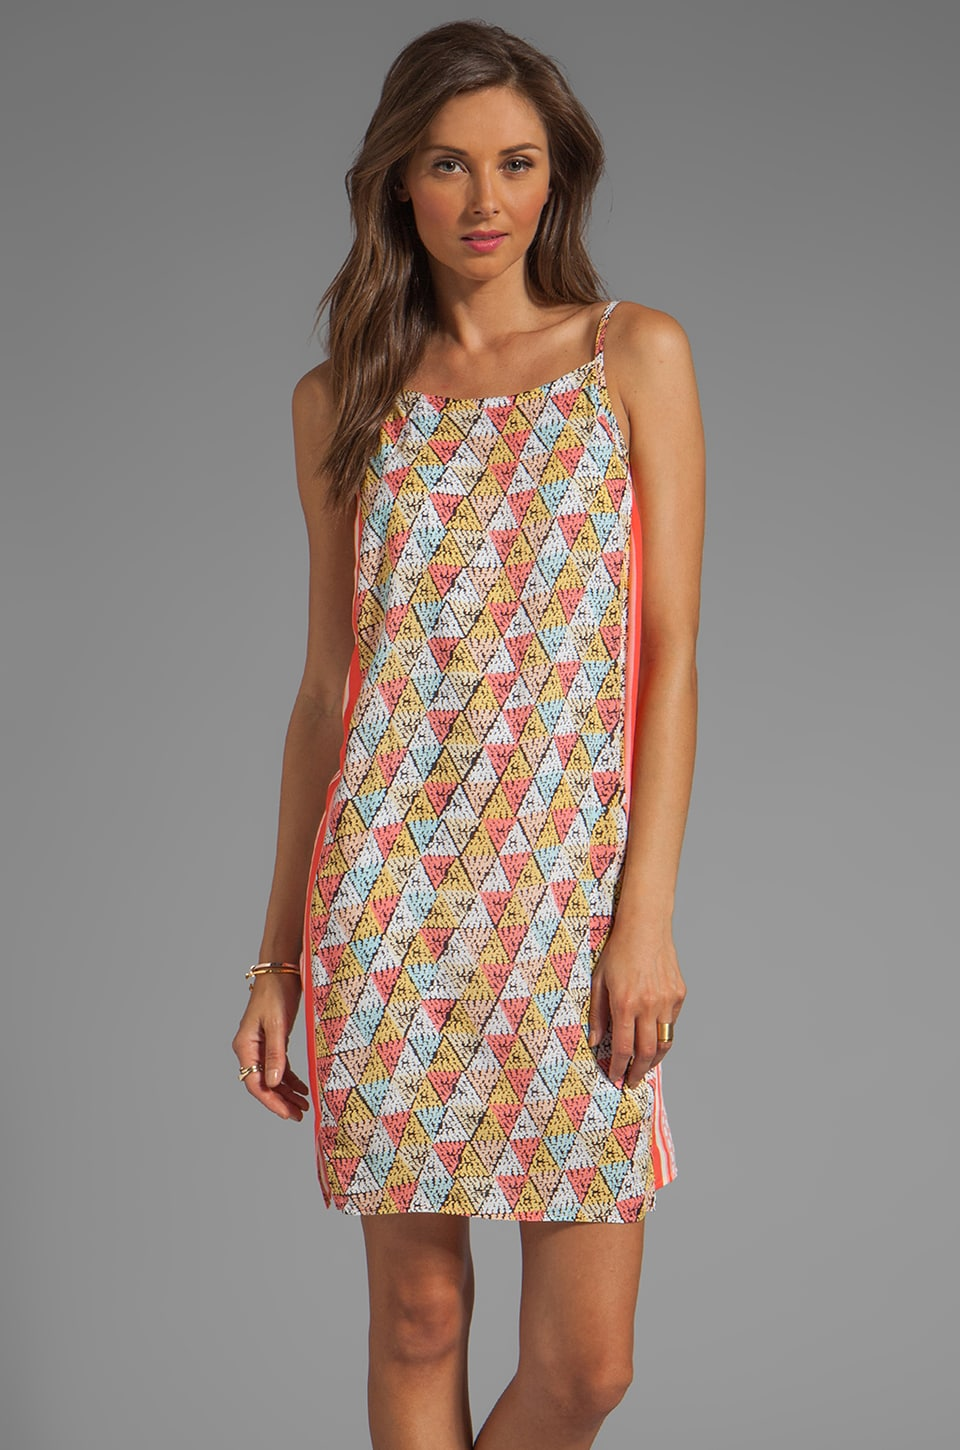 Ella Moss Tiki Dress in Coral